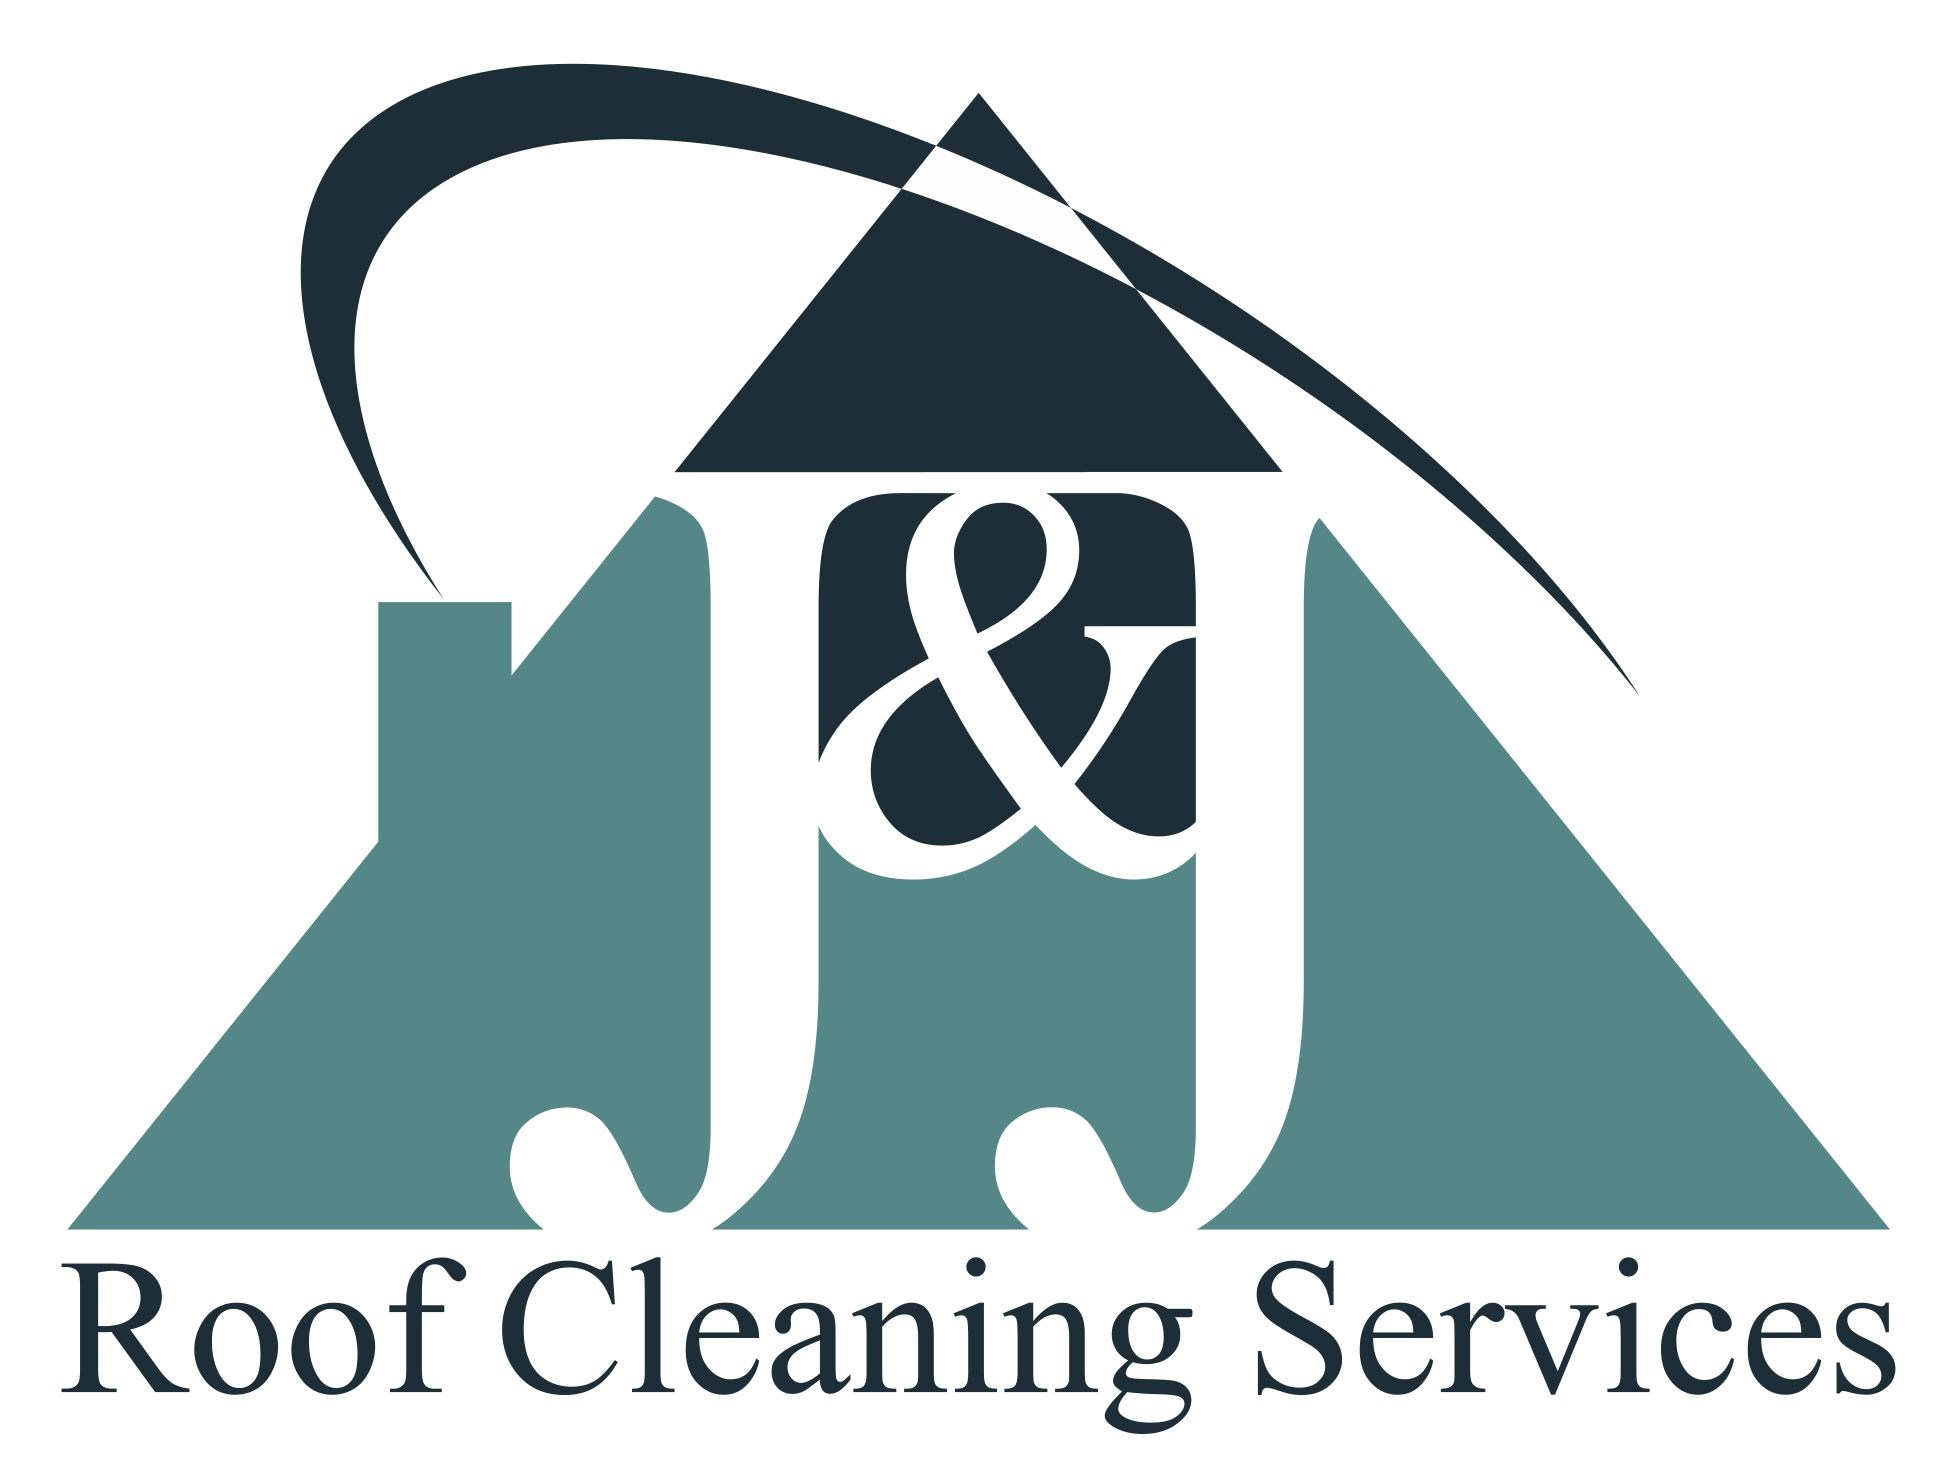 J Amp J Roof Cleaning Services Reviews Everett Wa Angie